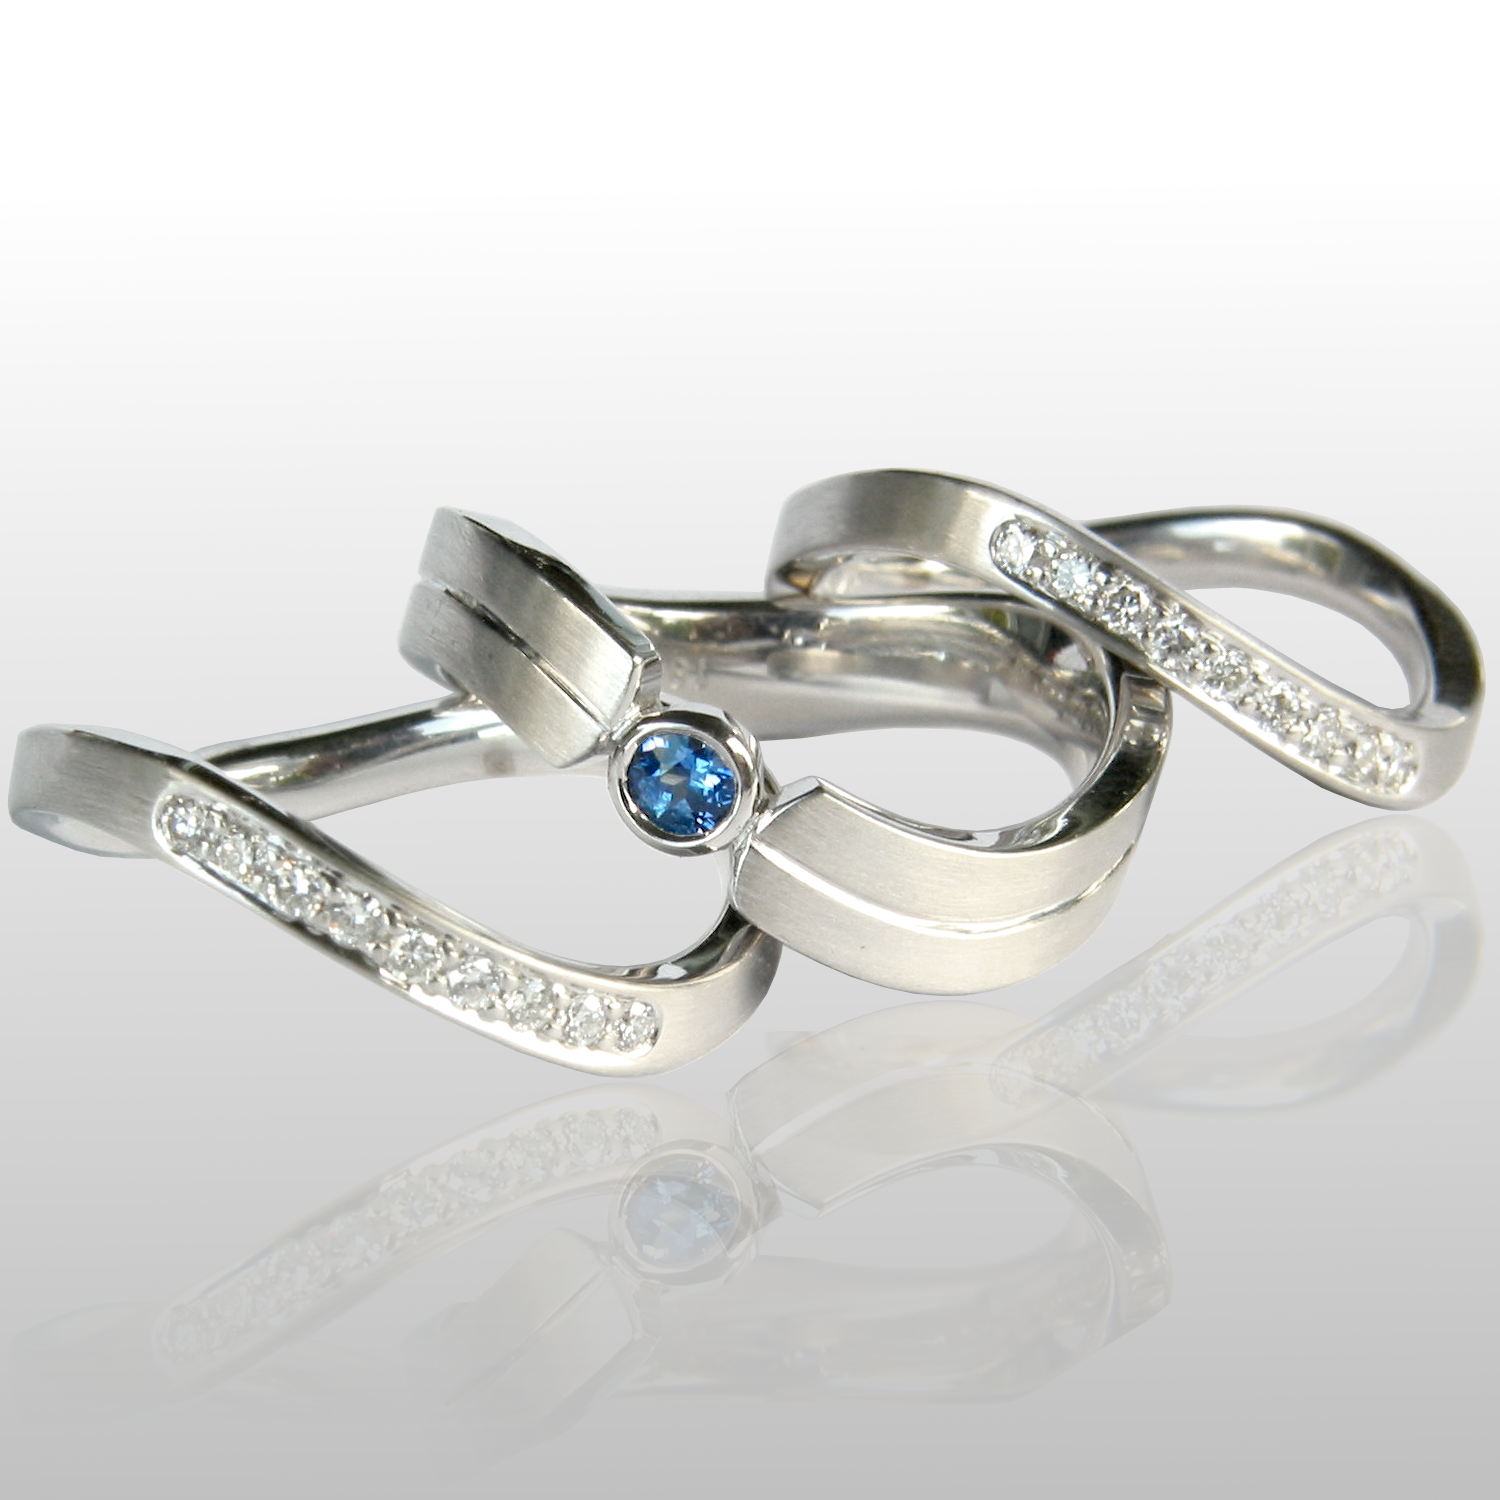 Contemporary platinum wedding band set 'Synergy' with blue sapphire and diamonds by Pratima Design Fine Art Jewelry